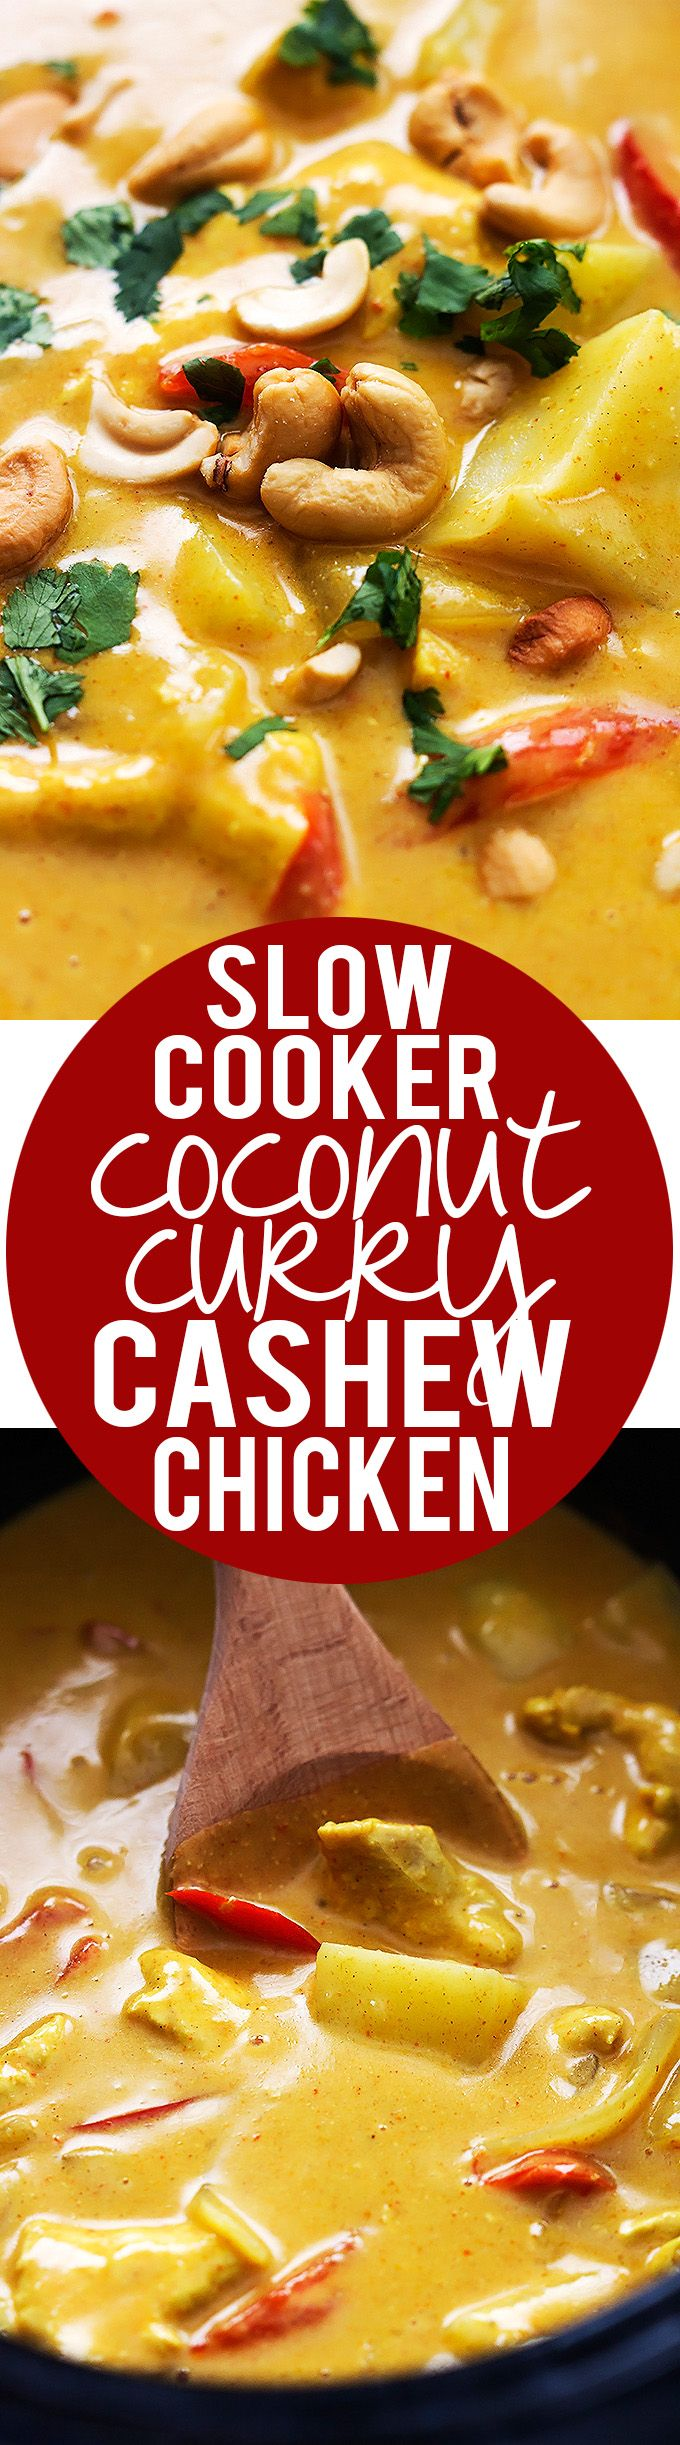 sites Recipe and     Chicken  Coconut Chicken Curry Cashew shopping Slow Curries Curry online cheap Cashew Coconut clothing Cooker